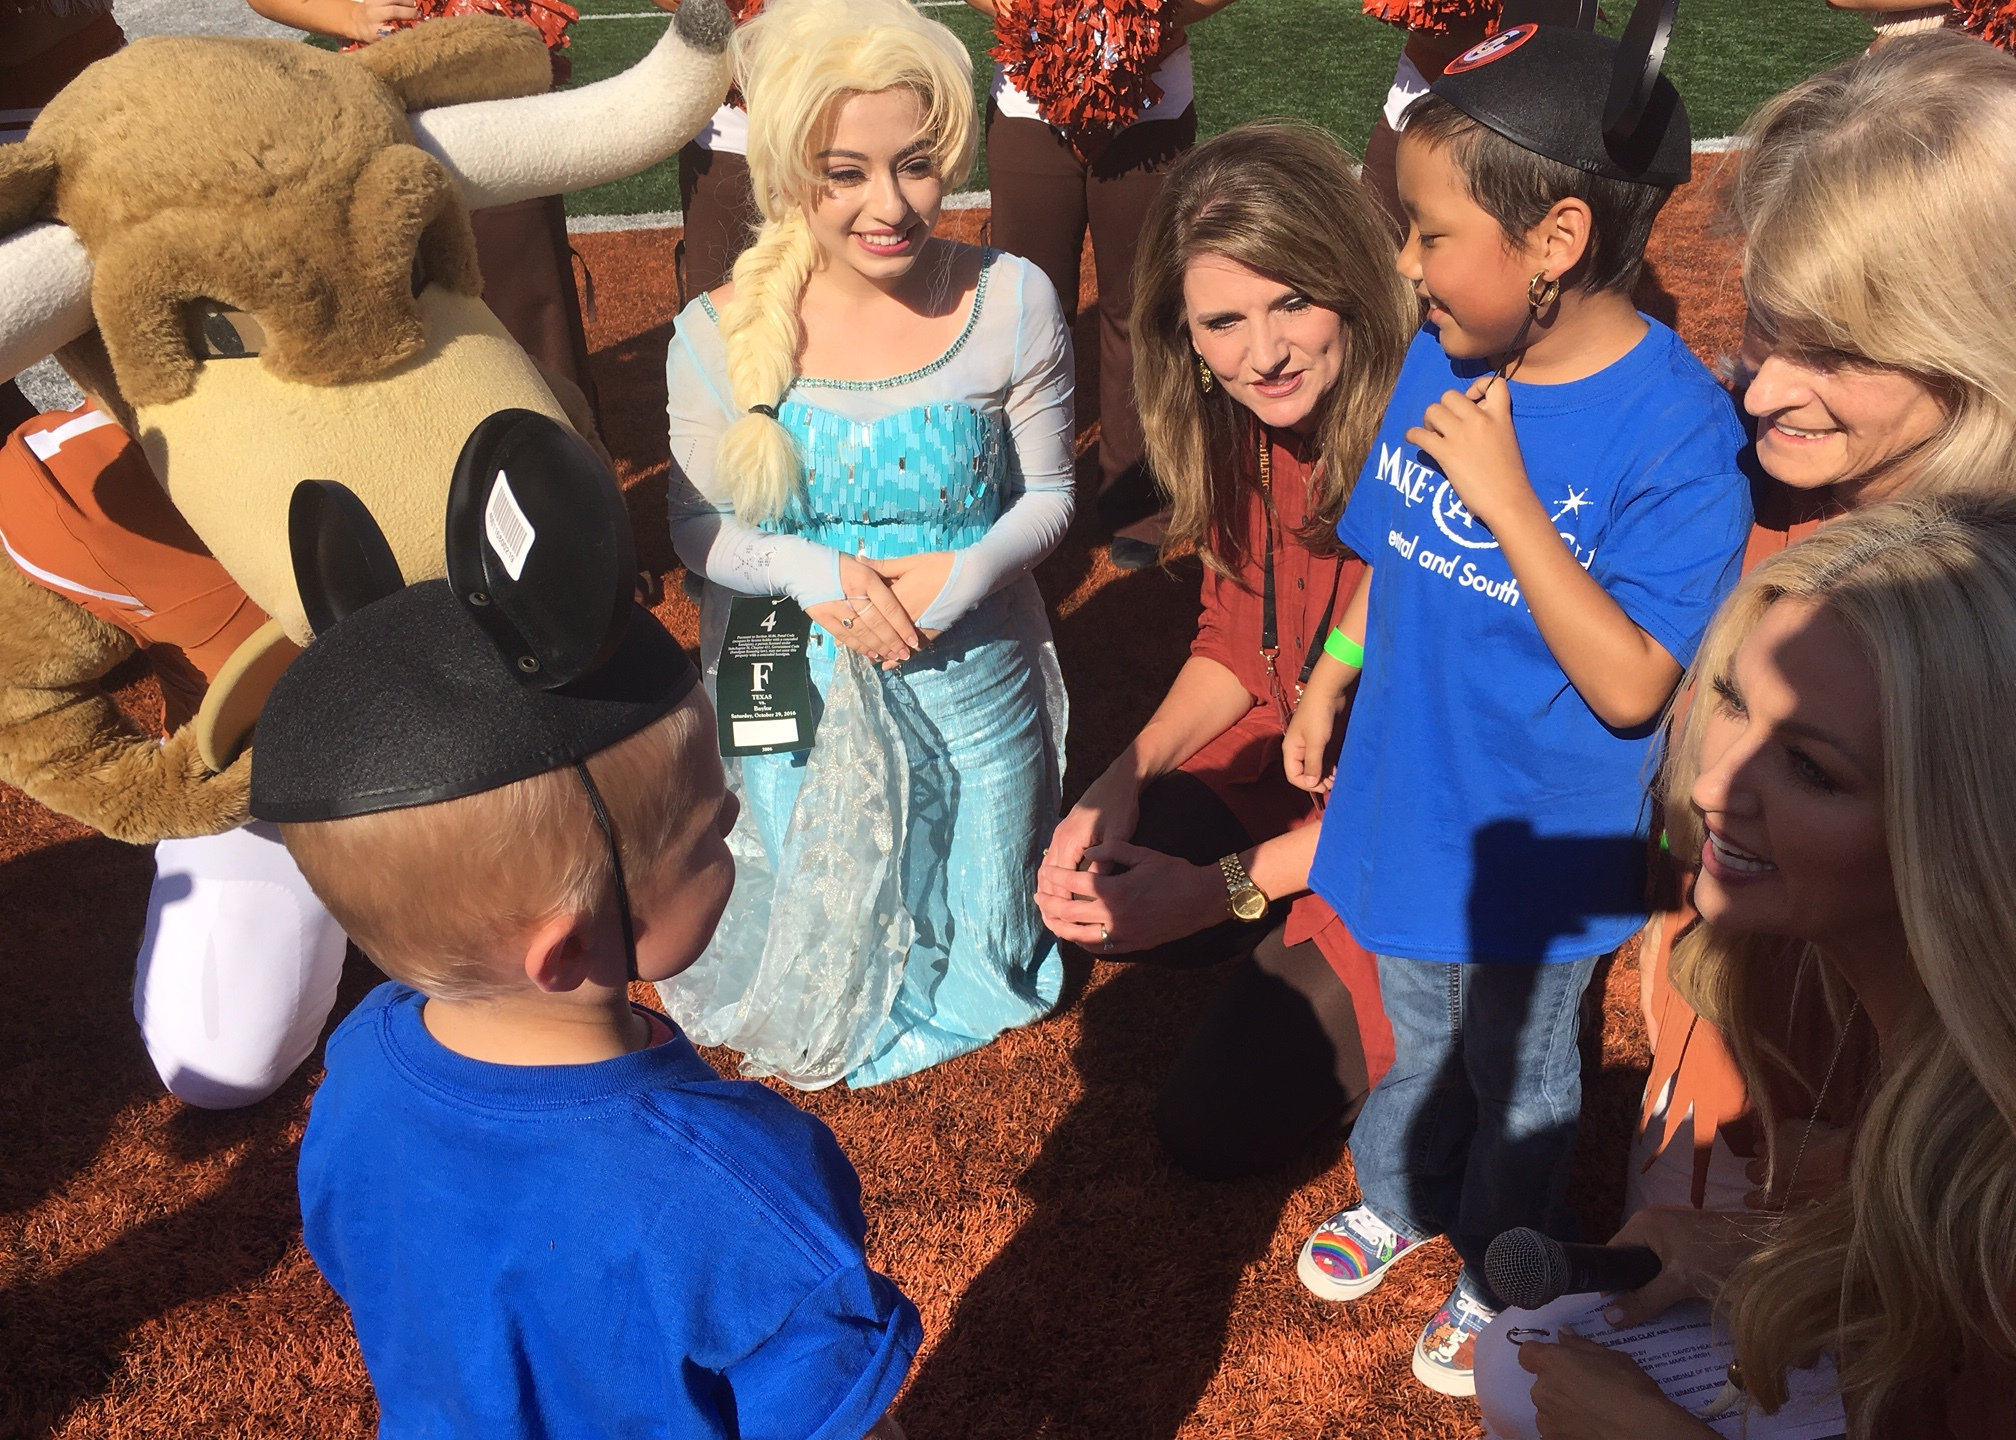 Make-A-Wish recipients Jacqueline and Clay received news that they'd be going to Disney World while at the UT vs. Baylor football game. (KXAN_T_368142